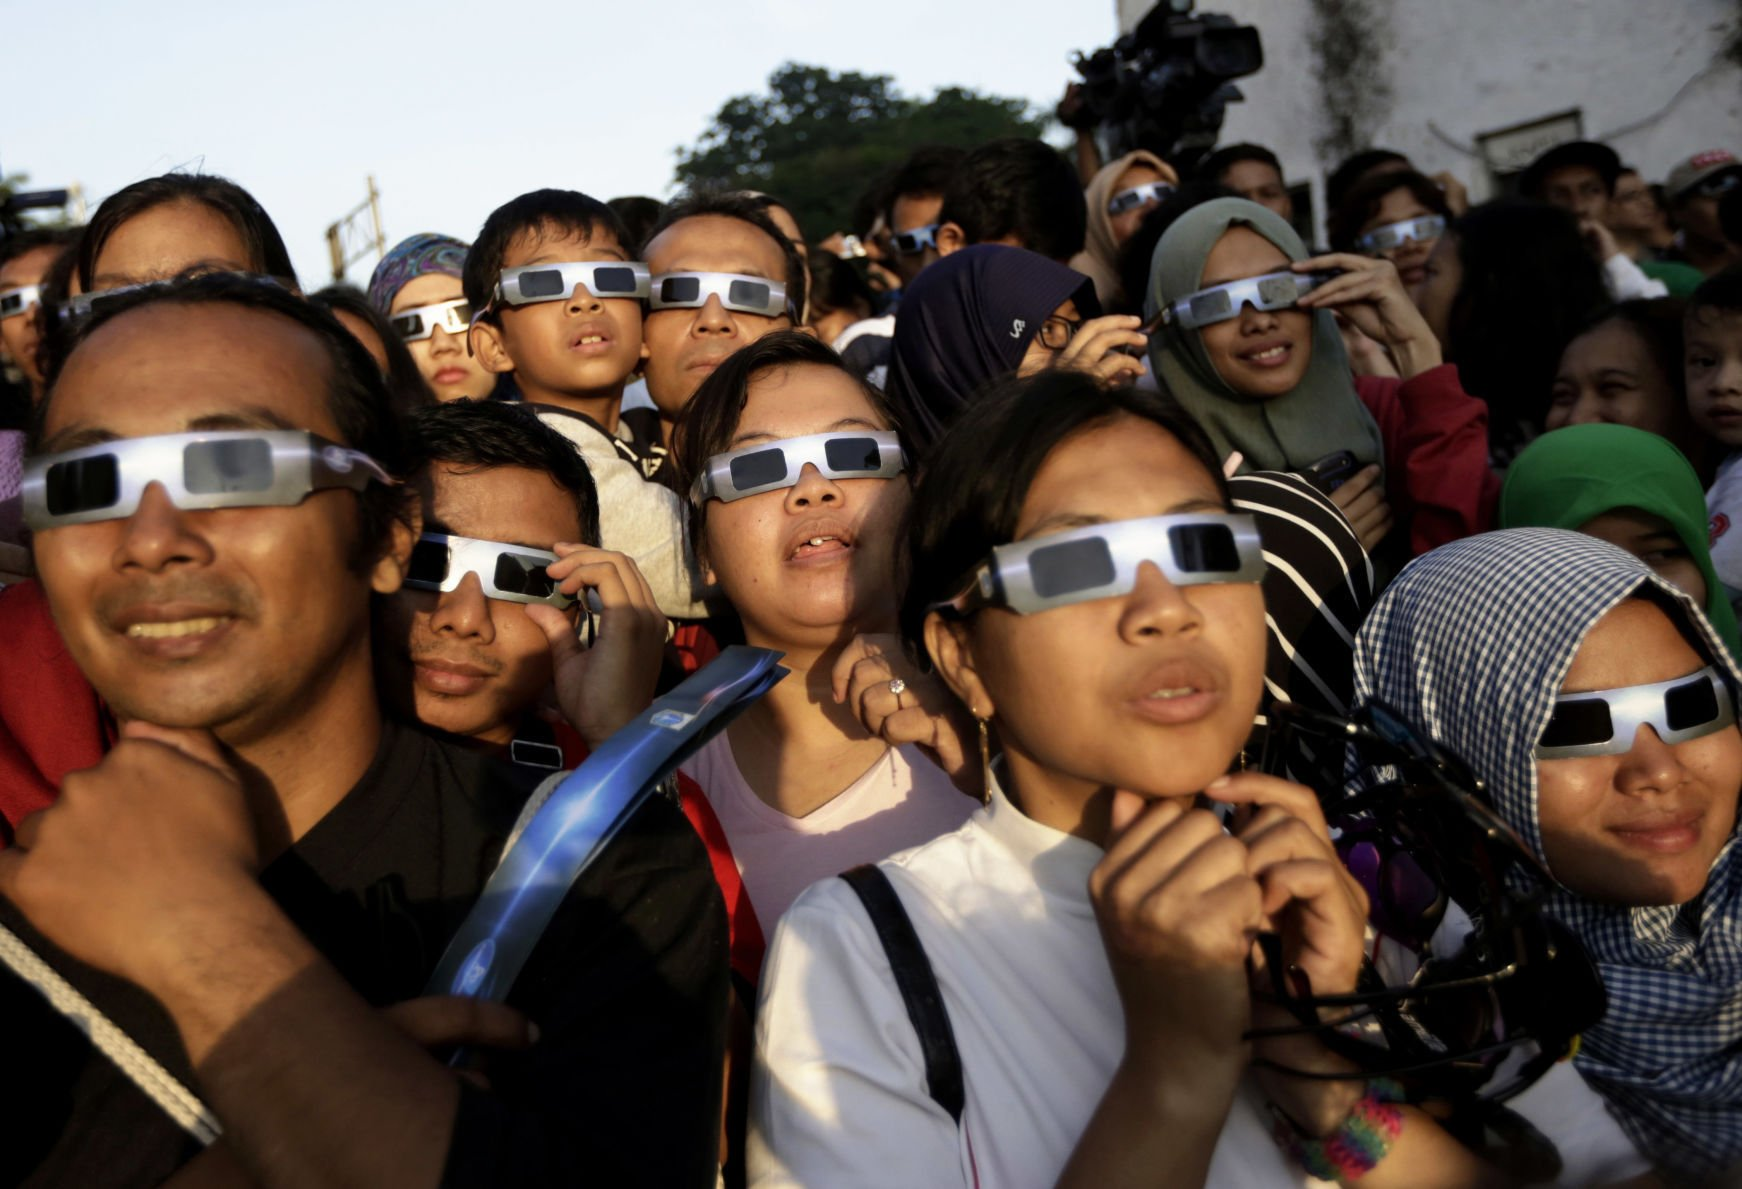 Solar eclipse will help scientists learn more about 'space weather'